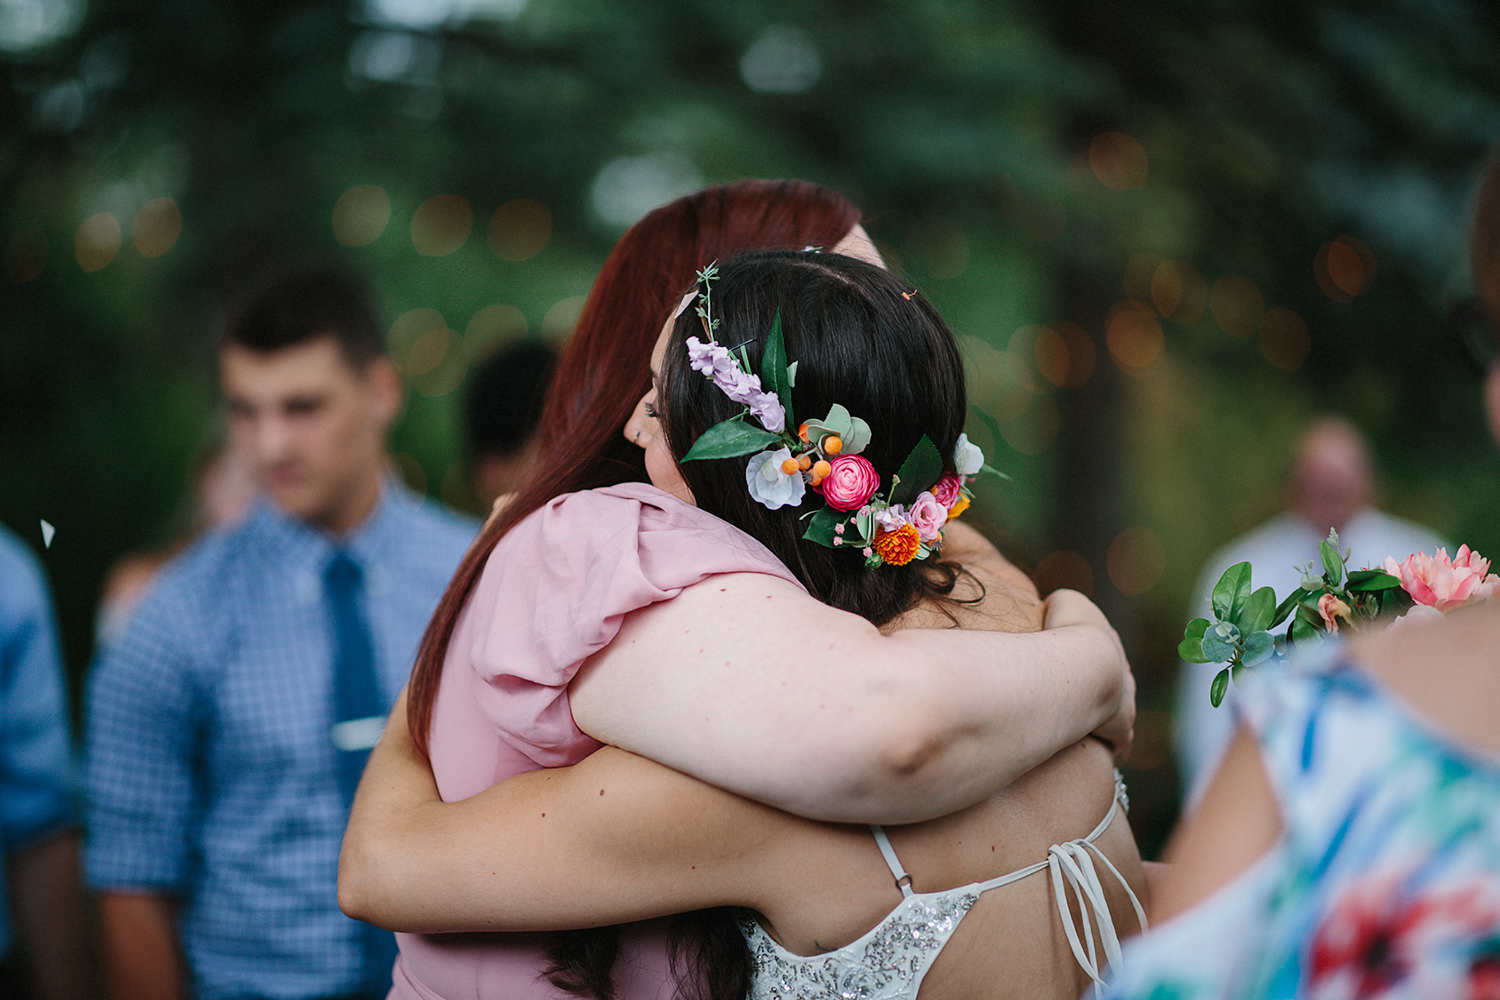 Backyard-family-intimate-cottage-wedding-chatum-kent-toronto-ontario-film-photographer-ryanne-hollies-photography-diy-string-lights-and-lanterns-reception-dinner-bride-and-groom-hugging-sister-emotional-candid-moments.jpg